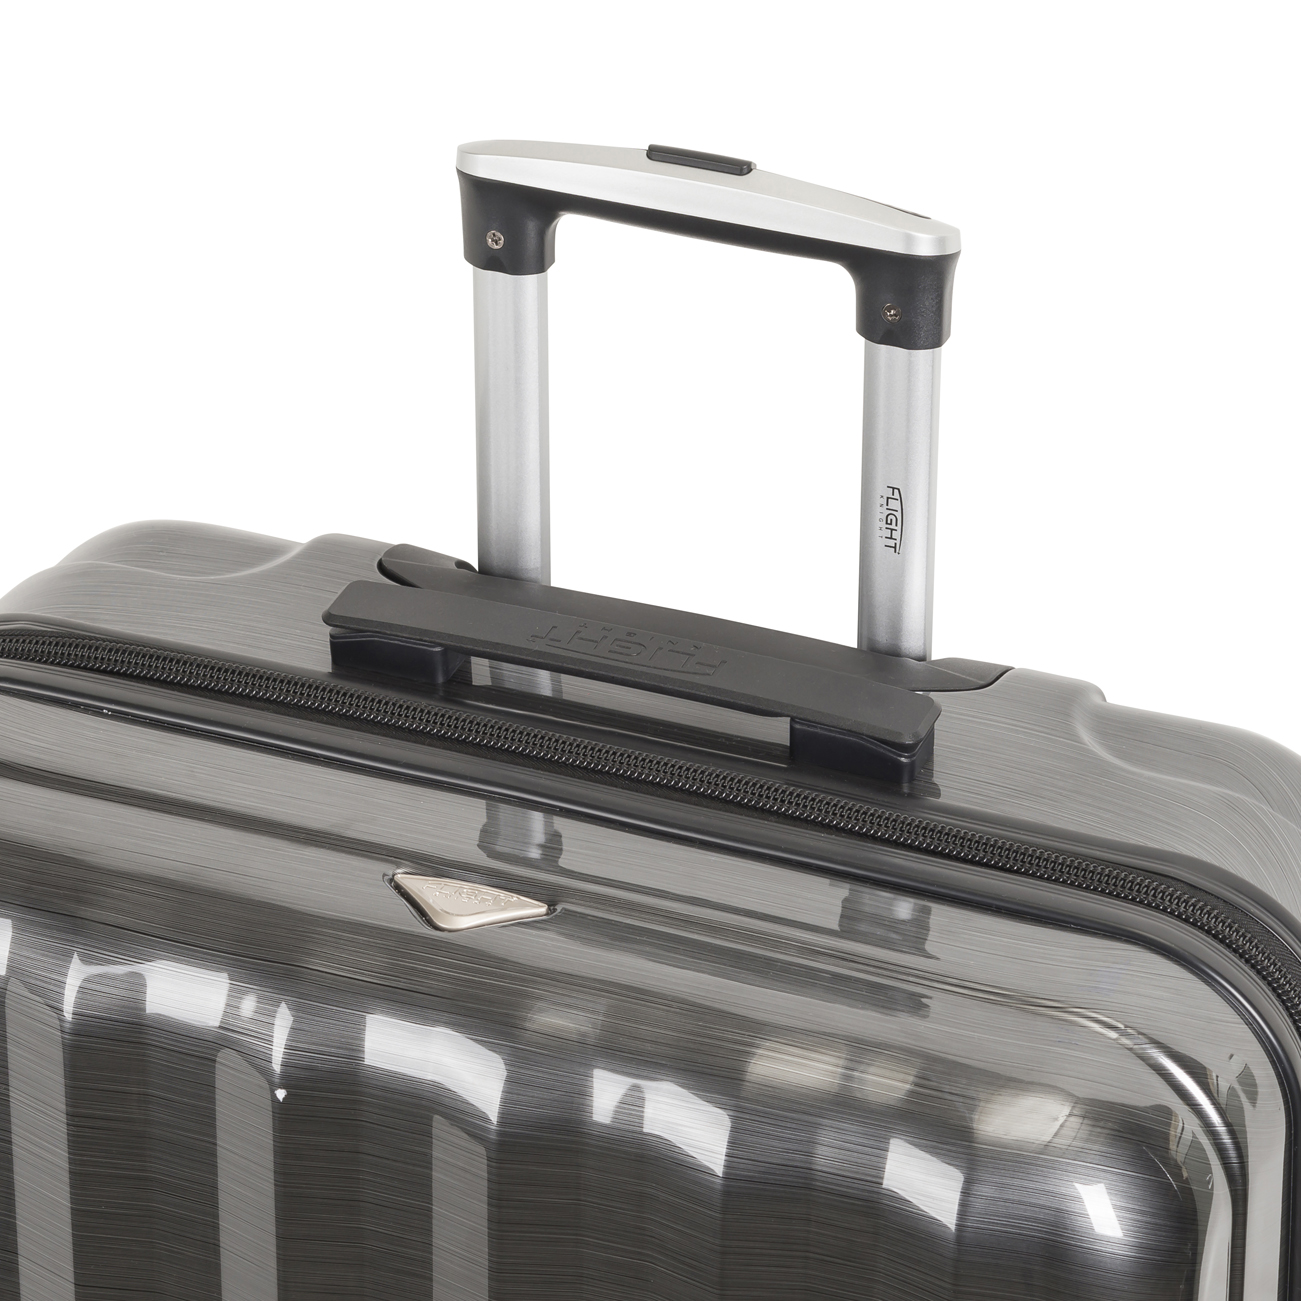 Details about Carry On Hand Luggage Lightweight Hard Case Travel Bag Max  Size Virgin Atlantic